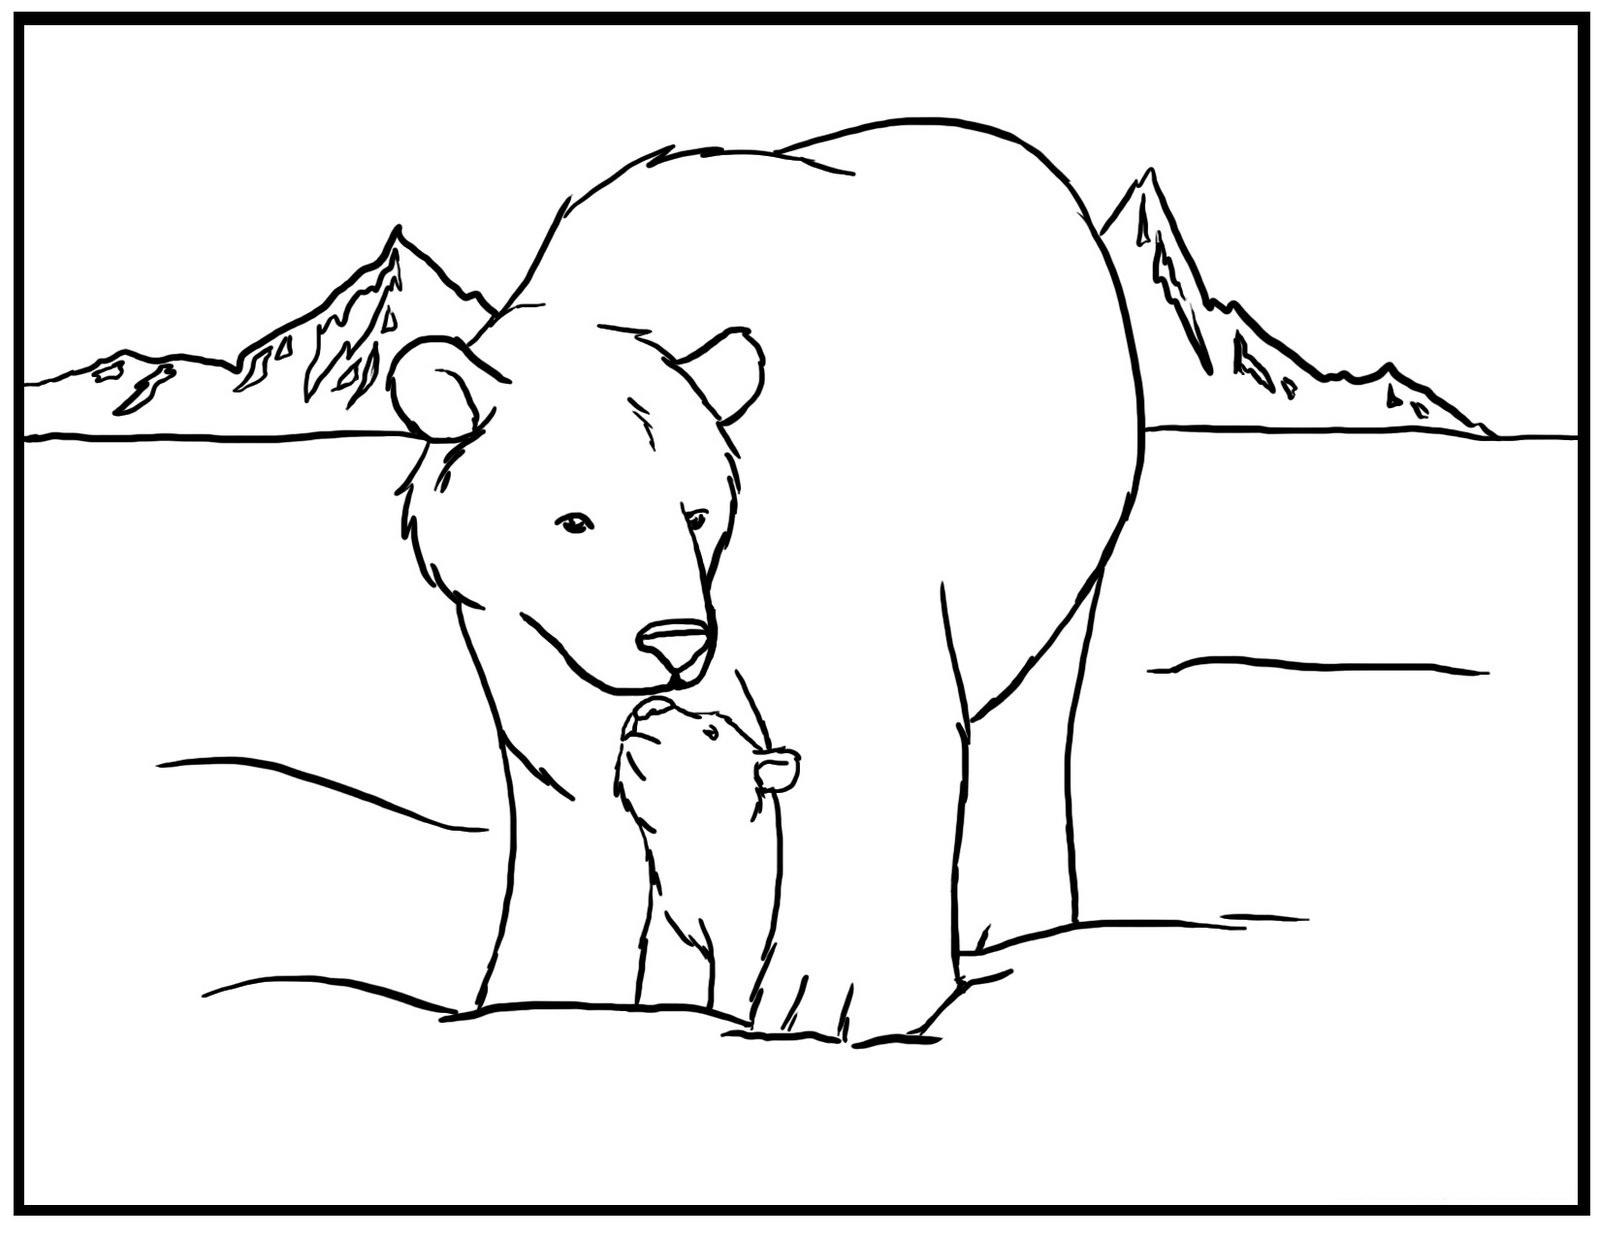 free printable bear coloring for kids black care bears narwhal blue turquoise things to coloring pages Black Bear Coloring Page